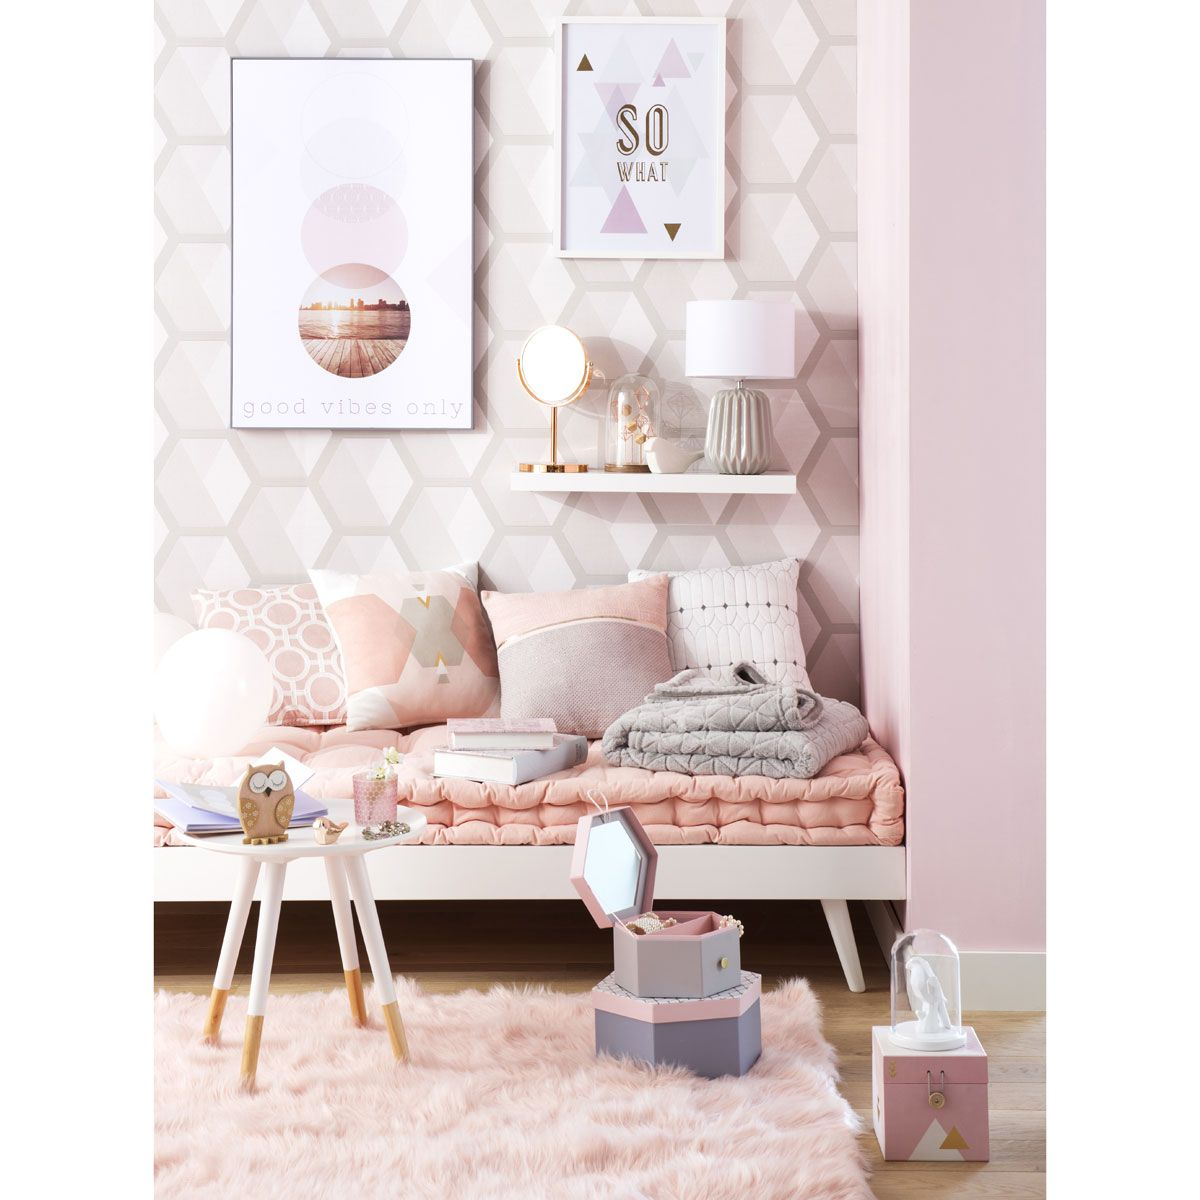 housse de coussin en coton rose 40 x 40 cm pastels hygge and exterior design. Black Bedroom Furniture Sets. Home Design Ideas